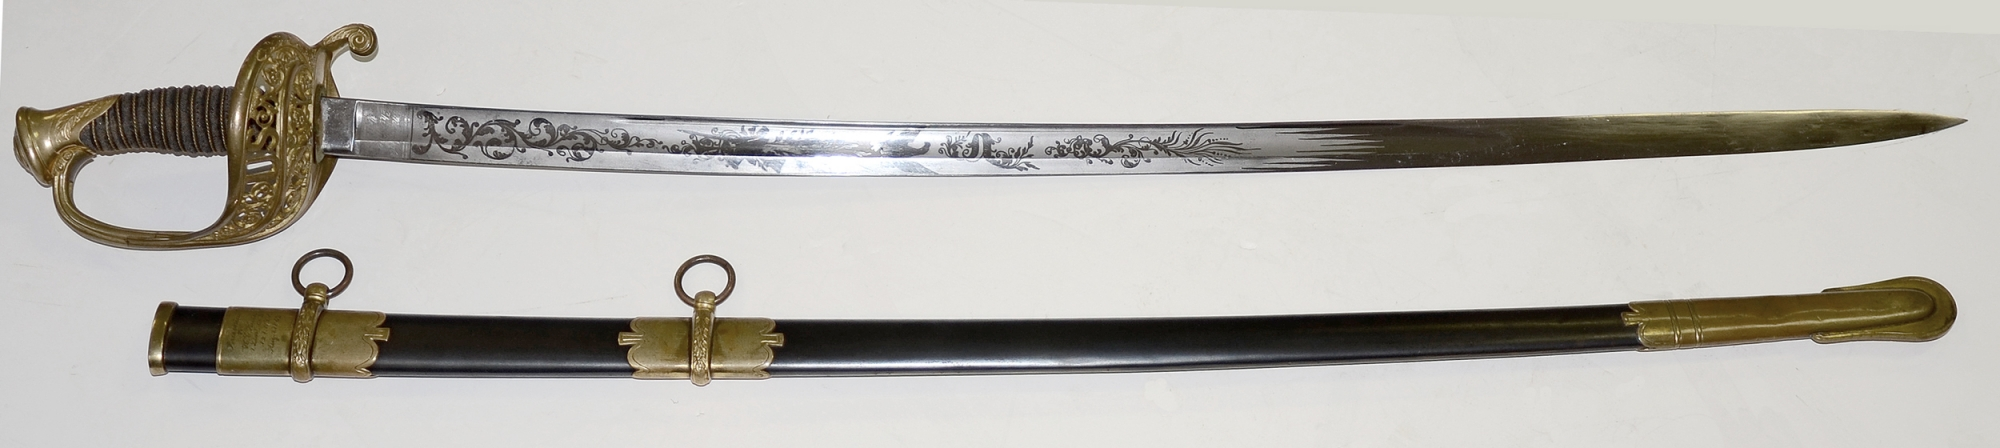 AMES M1850 STAFF & FIELD OFFICER'S SWORD PRESENTED TO 121ST NEW YORK LIEUTENANT